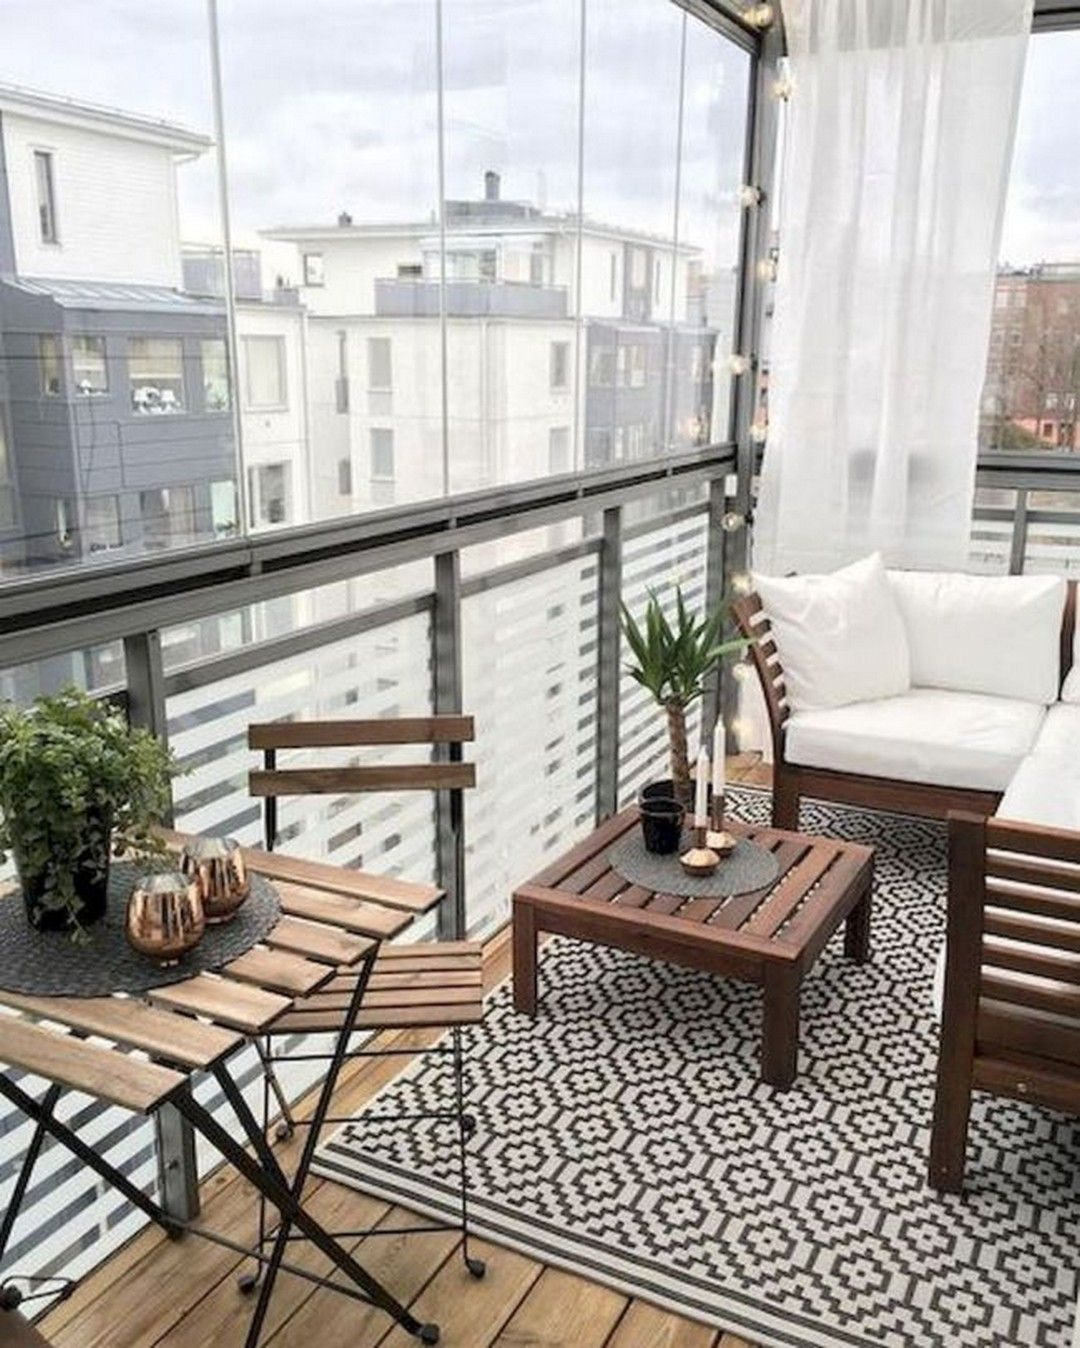 9 Great Ideas of Living Room Apartment Decor Ideas to Copy on Yourself #balconyideas